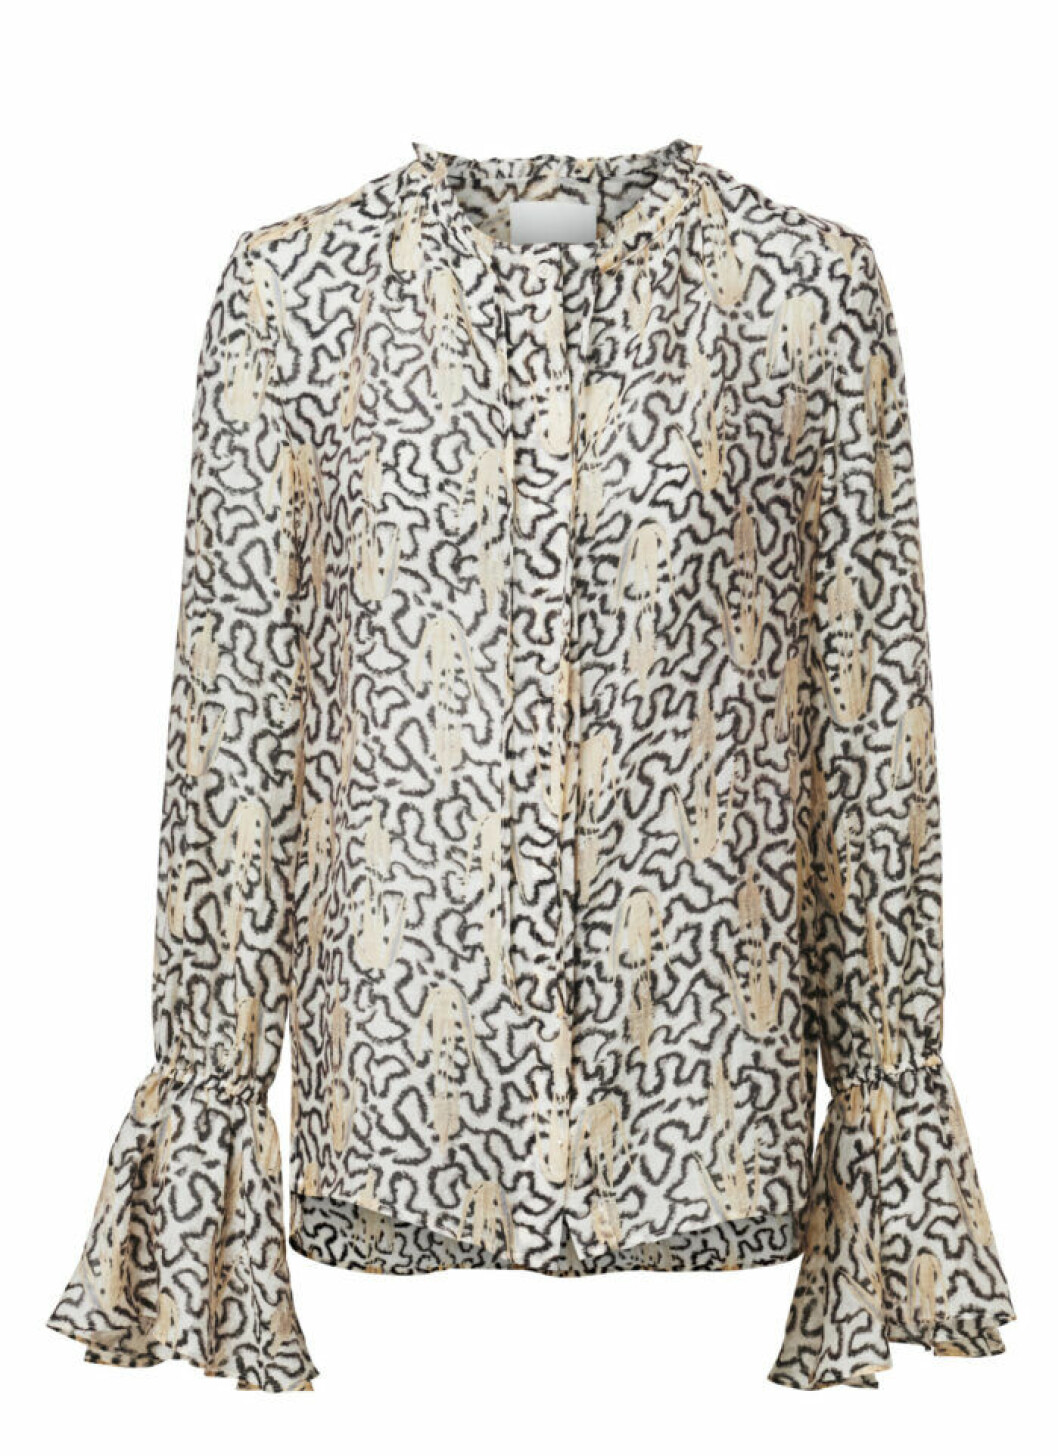 H&M Conscious Exclusive 2019 blus med volangkant nedtill